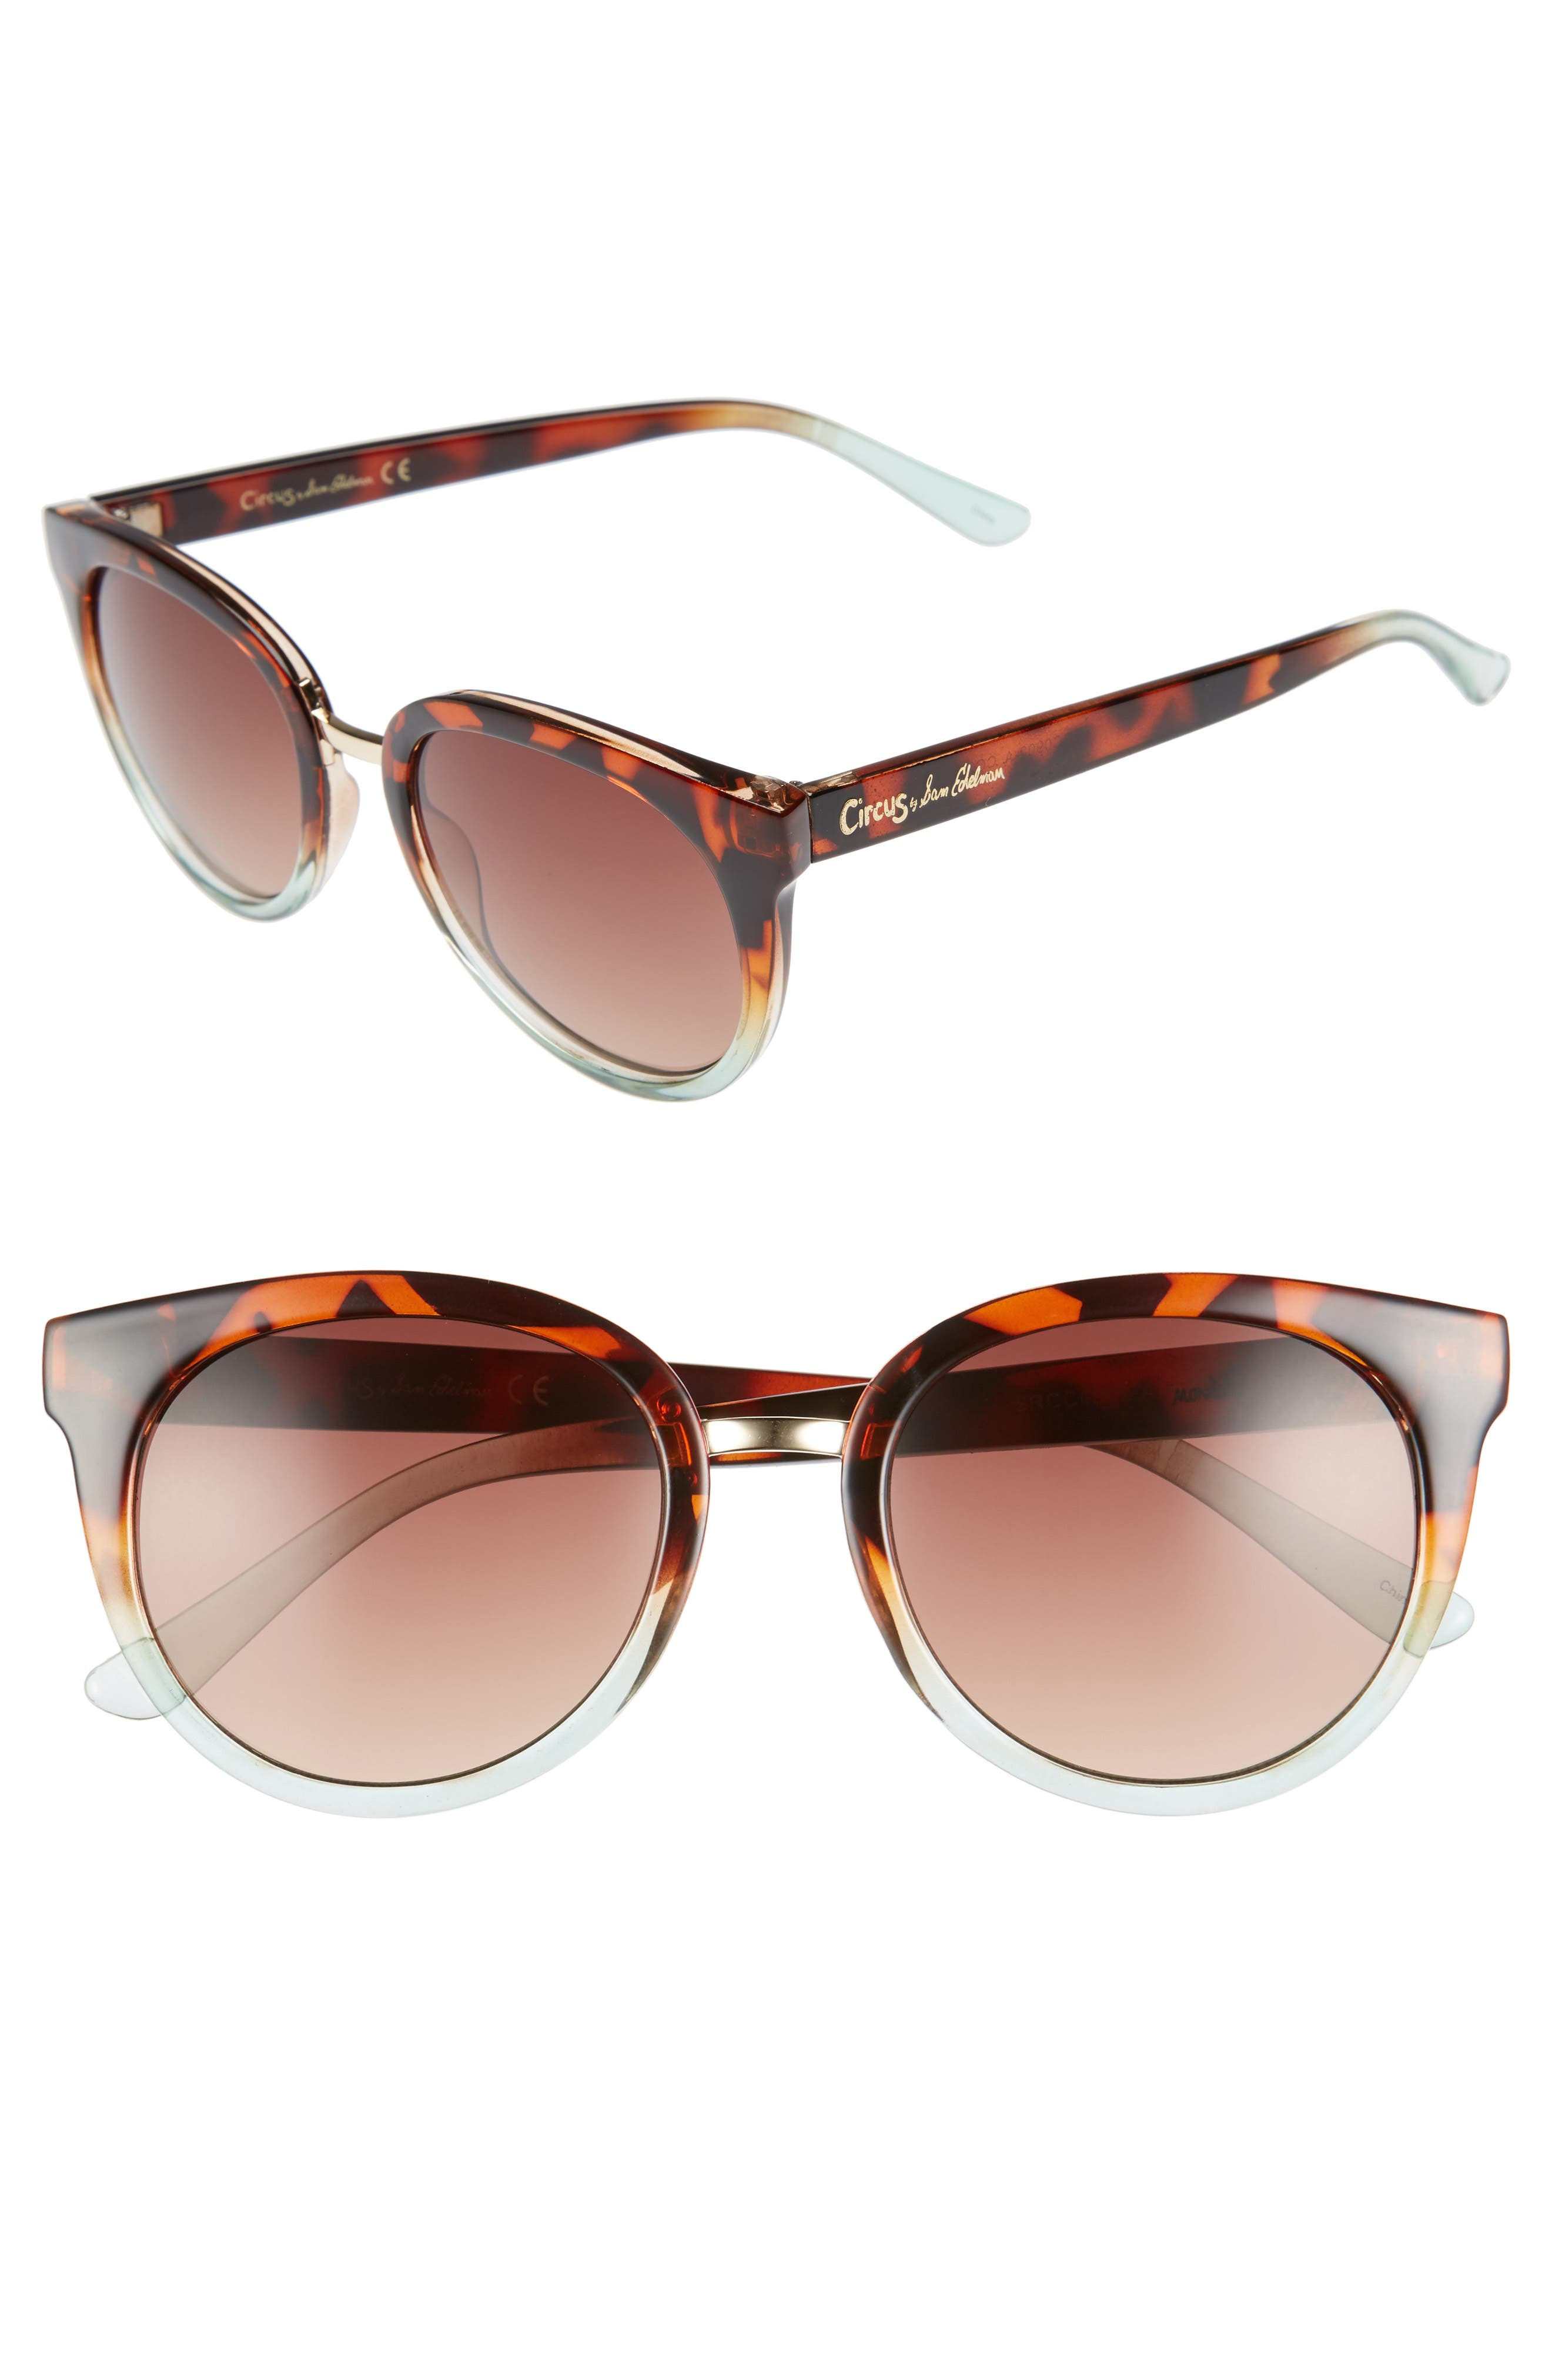 Main Image - Circus by Sam Edelman 51mm Ombré Sunglasses